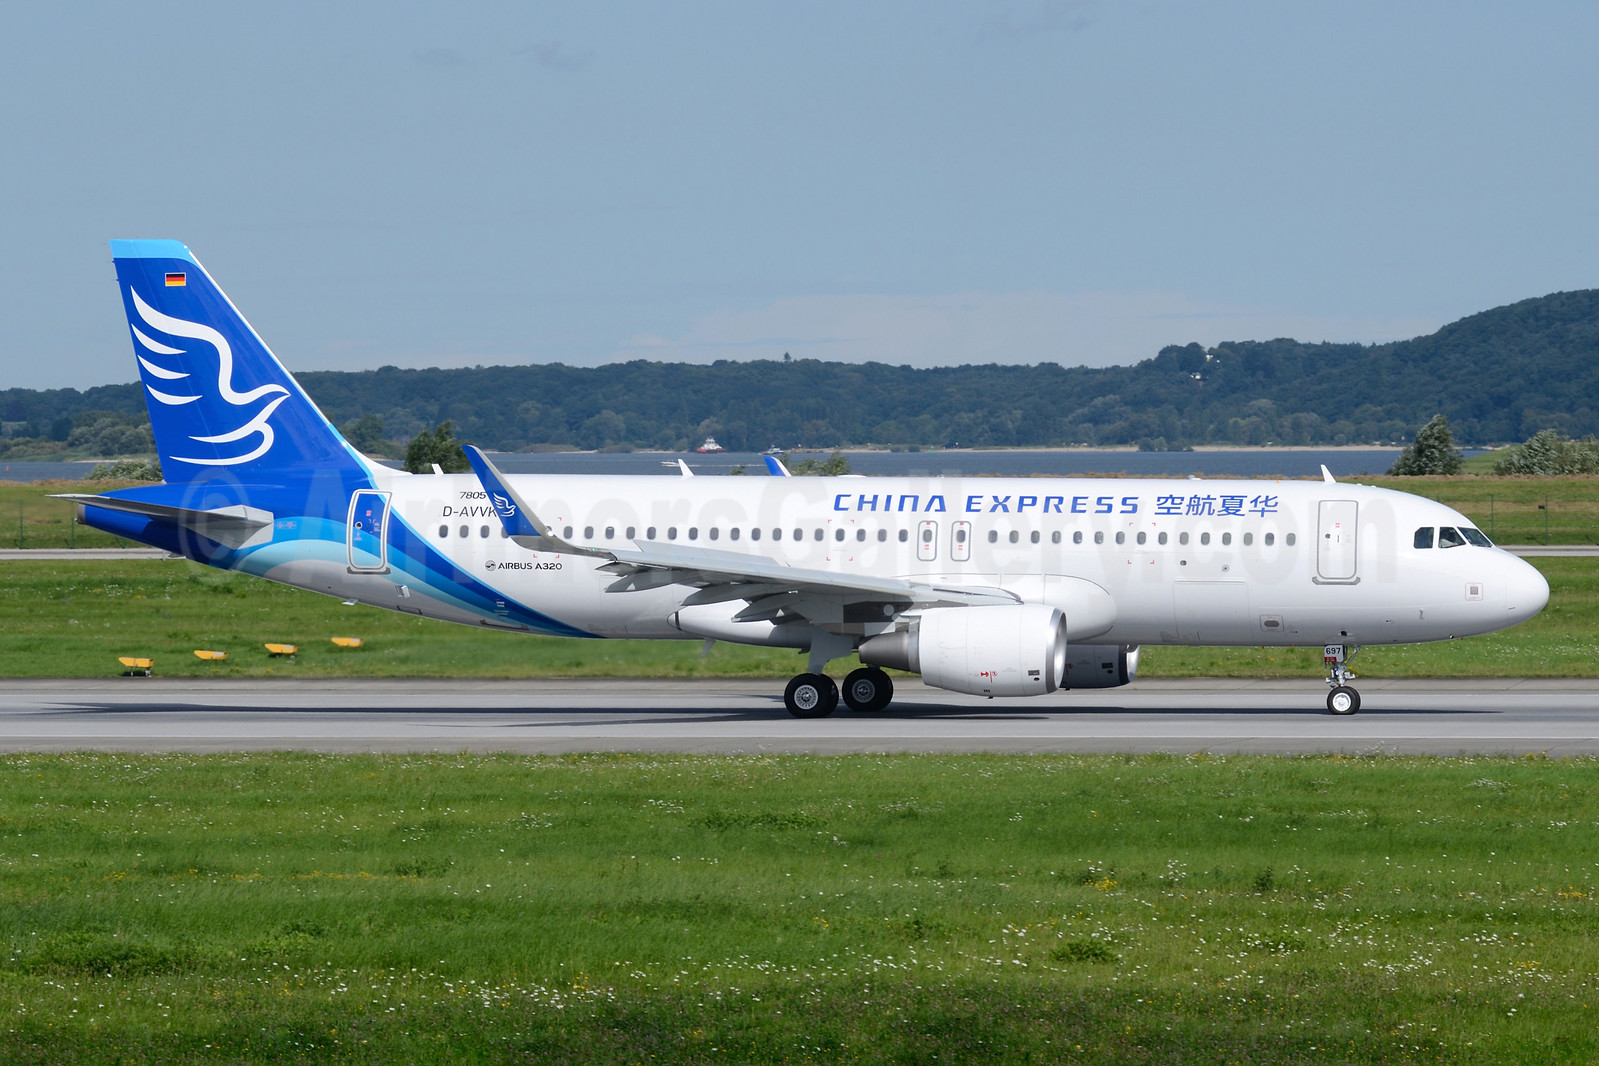 The first Airbus A320 for China Express in a revised livery